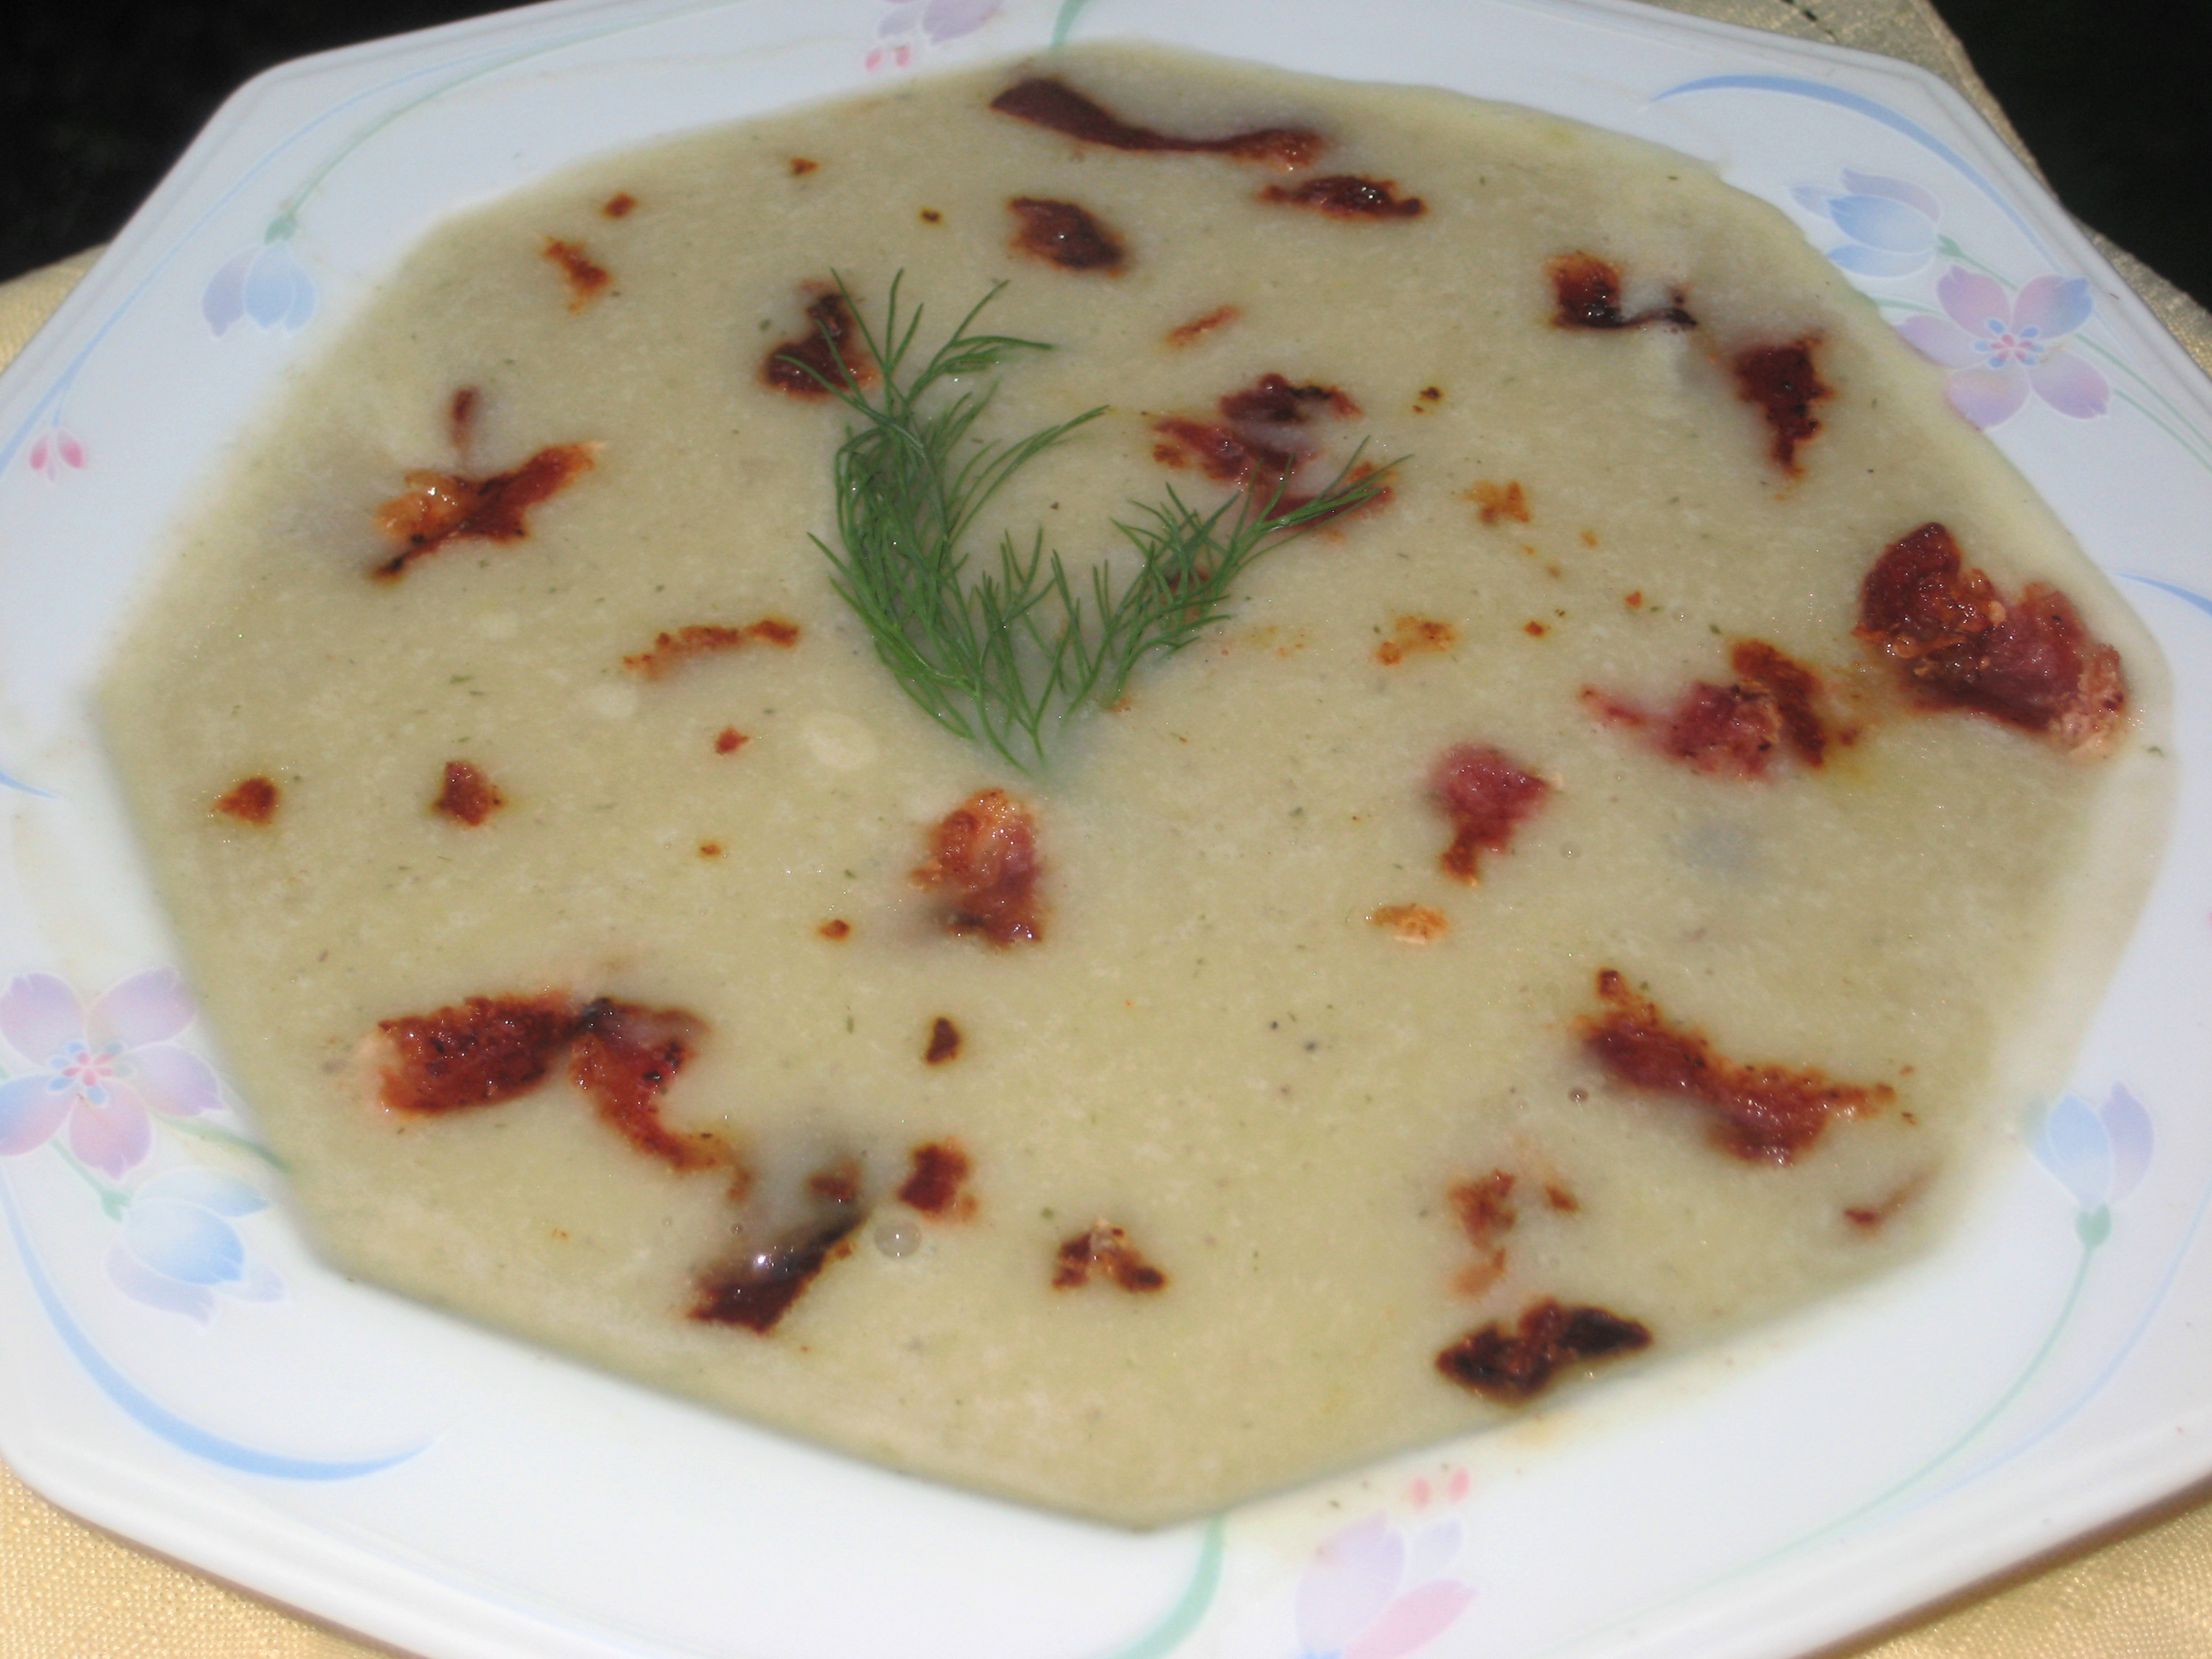 Creamed Potato, Mushroom, Leek Soup with Hickory Smoked Bacon Bits